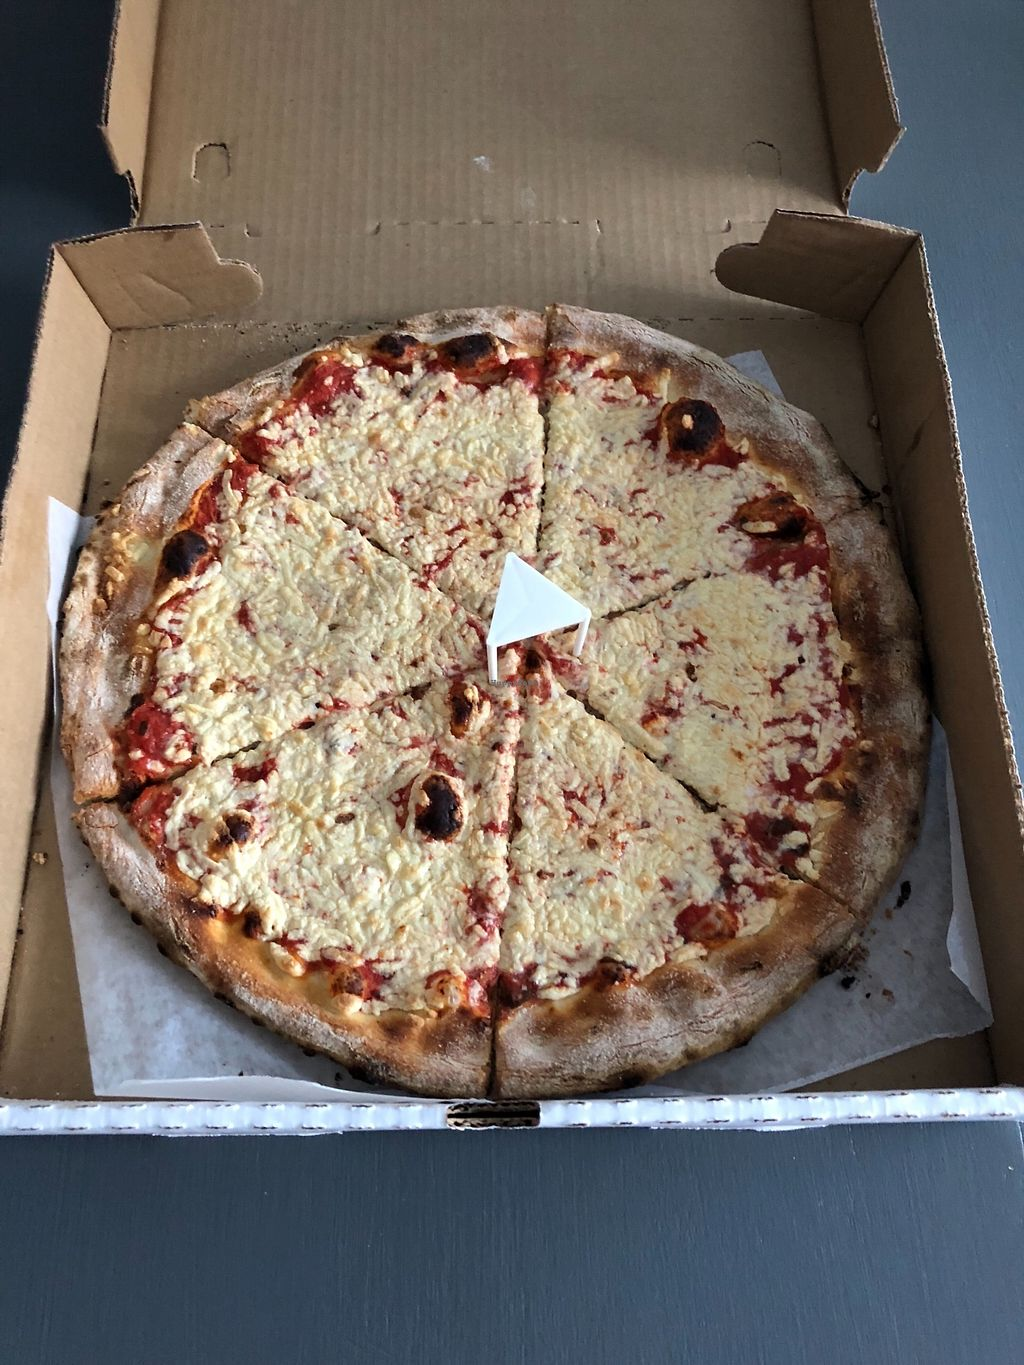 """Photo of Twisted Elm  by <a href=""""/members/profile/SaraSabo"""">SaraSabo</a> <br/>Margarita pizza with vegan cheese <br/> March 19, 2018  - <a href='/contact/abuse/image/91705/372719'>Report</a>"""